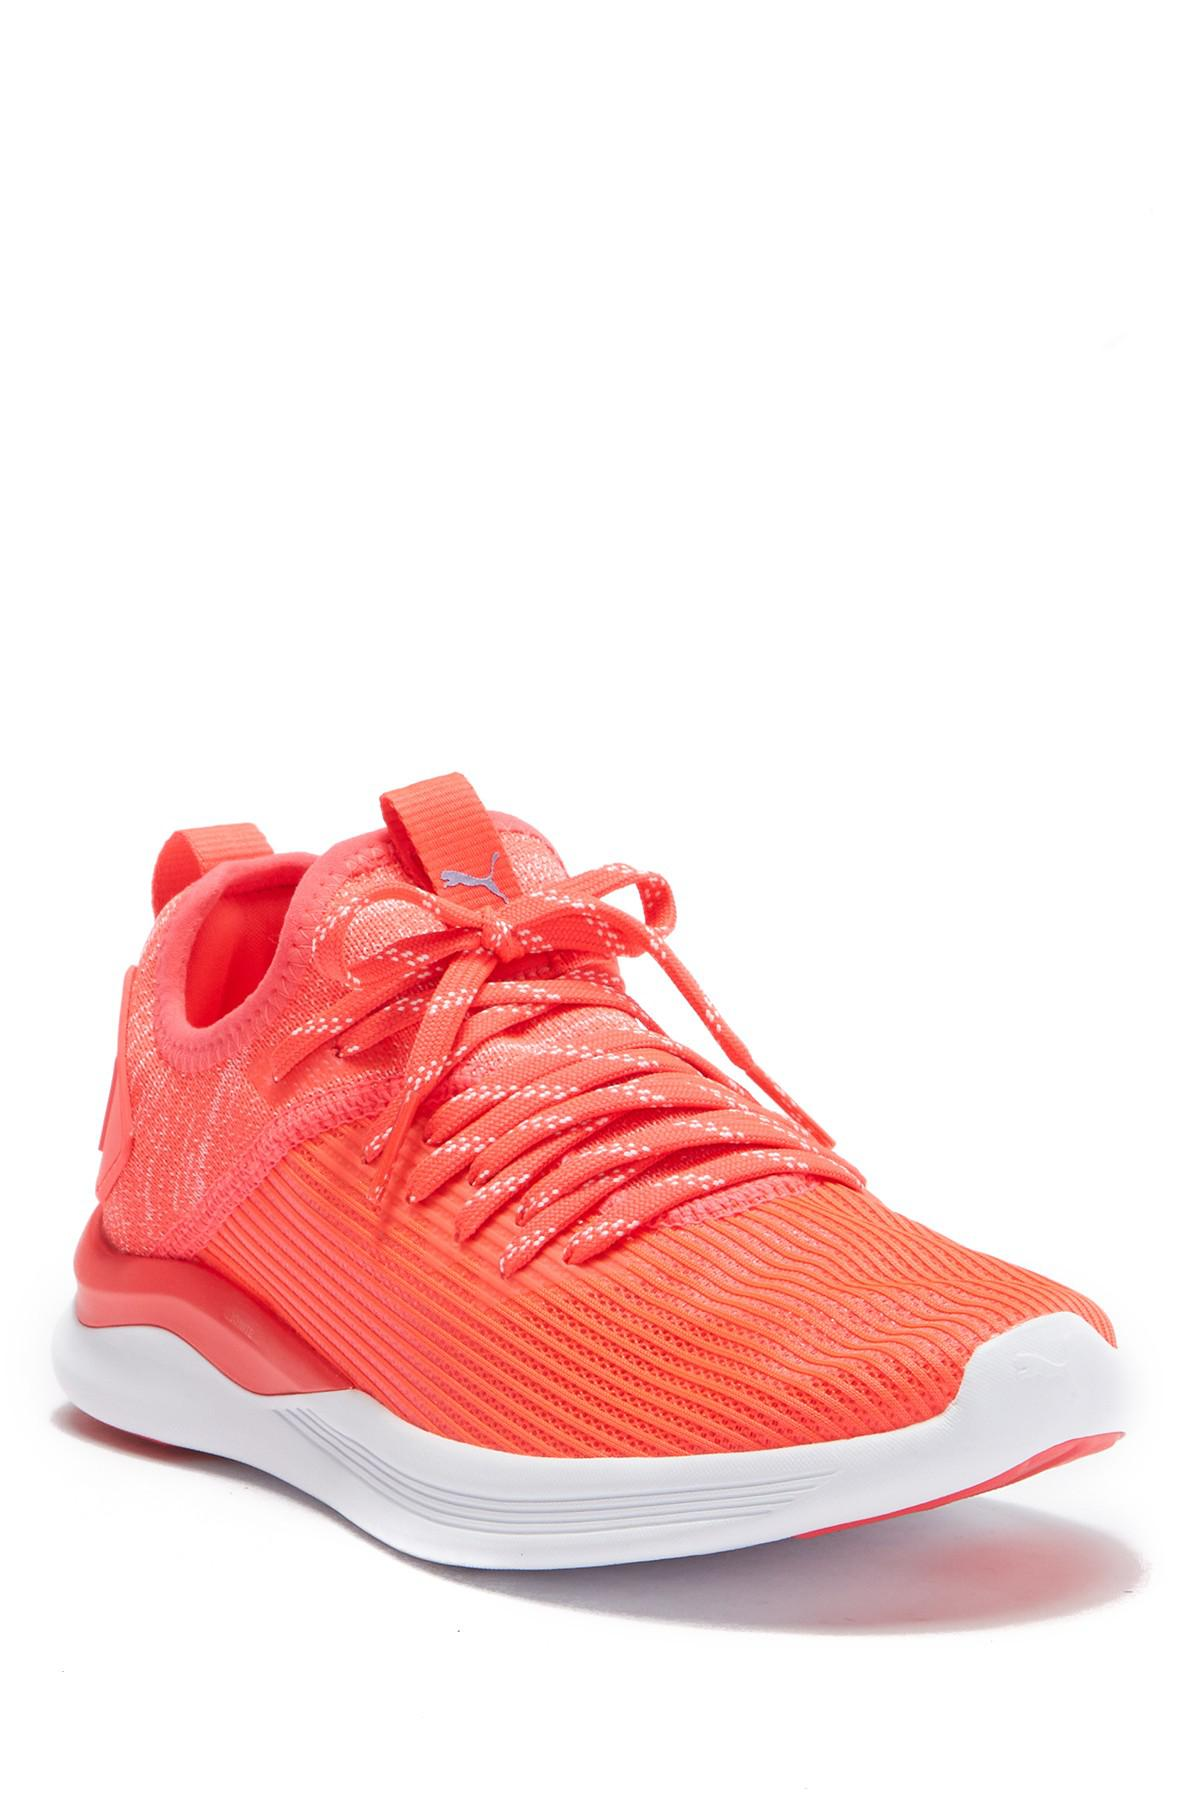 Lyst - PUMA Ignite Flash Evoknit Training Sneaker in Pink 9ccbba9bf